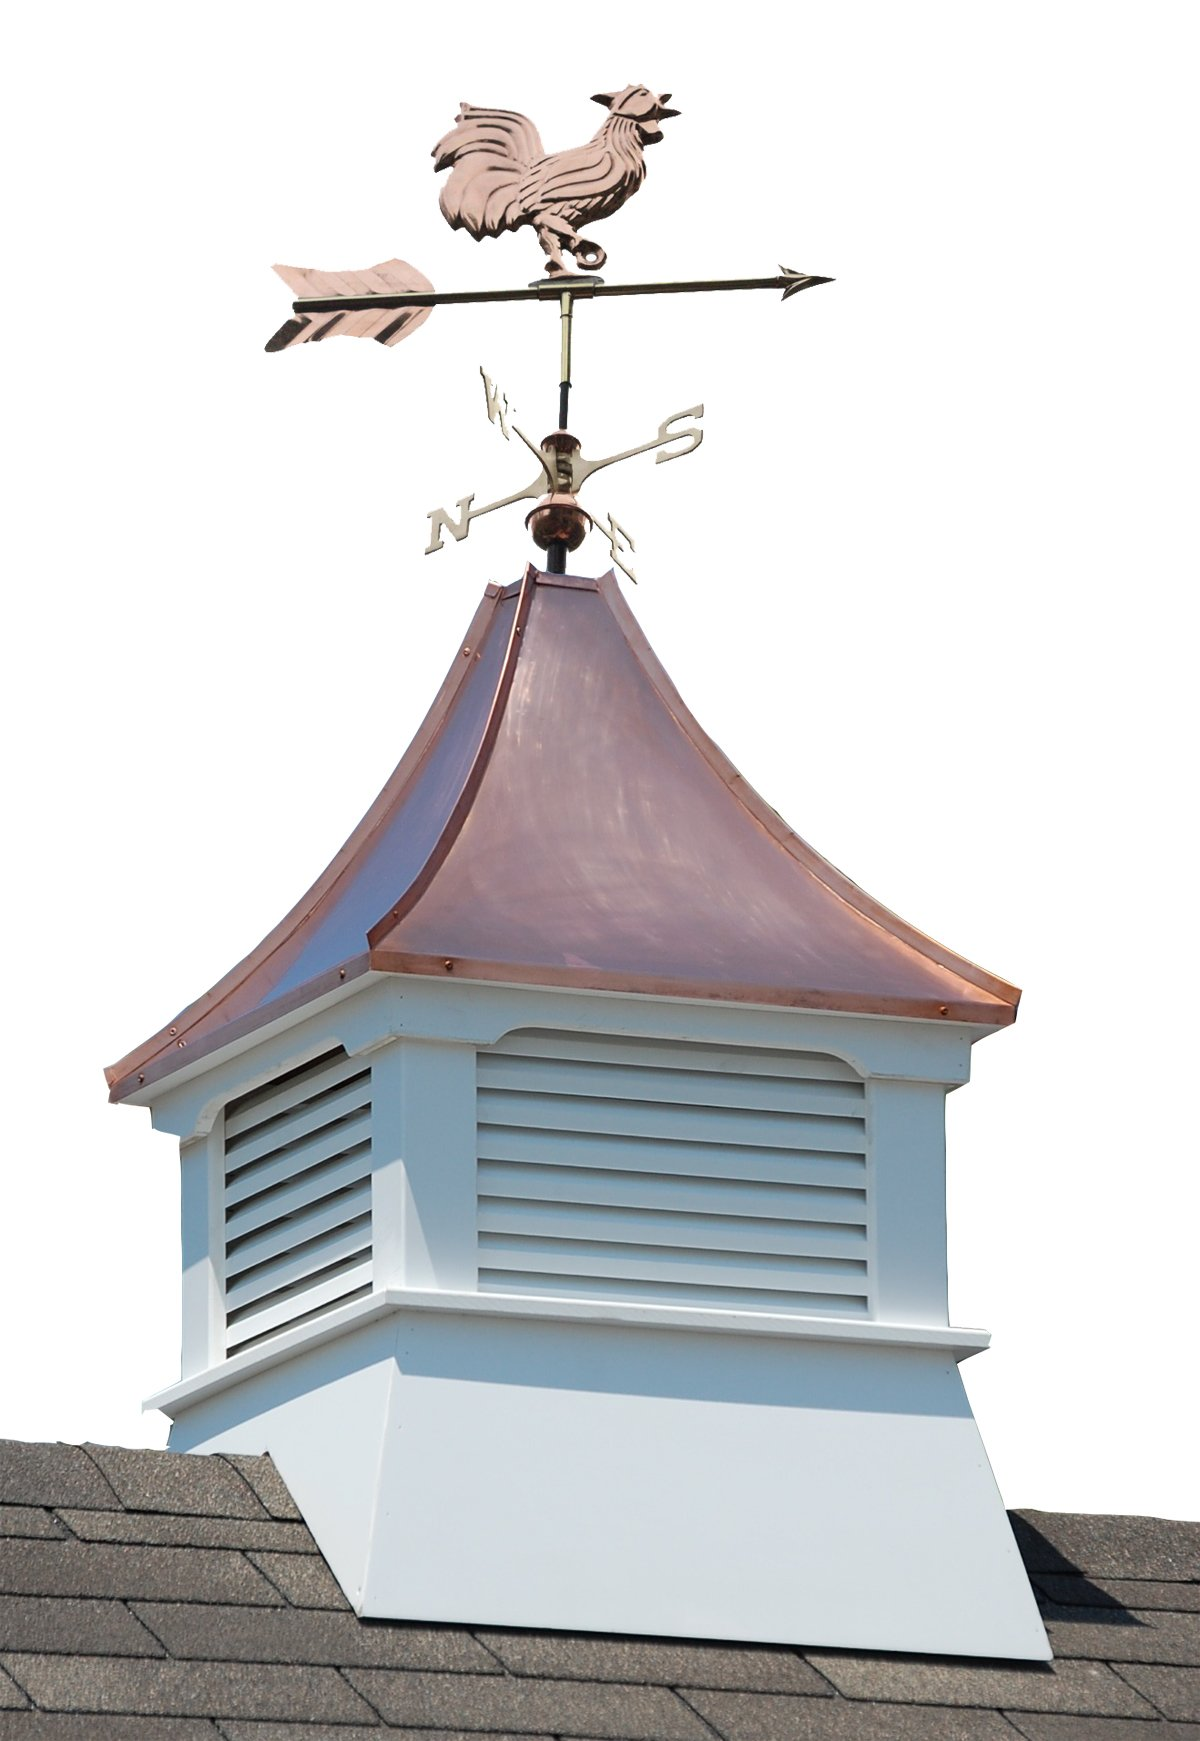 Accentua Olympia Cupola with Rooster Weathervane by Accentua